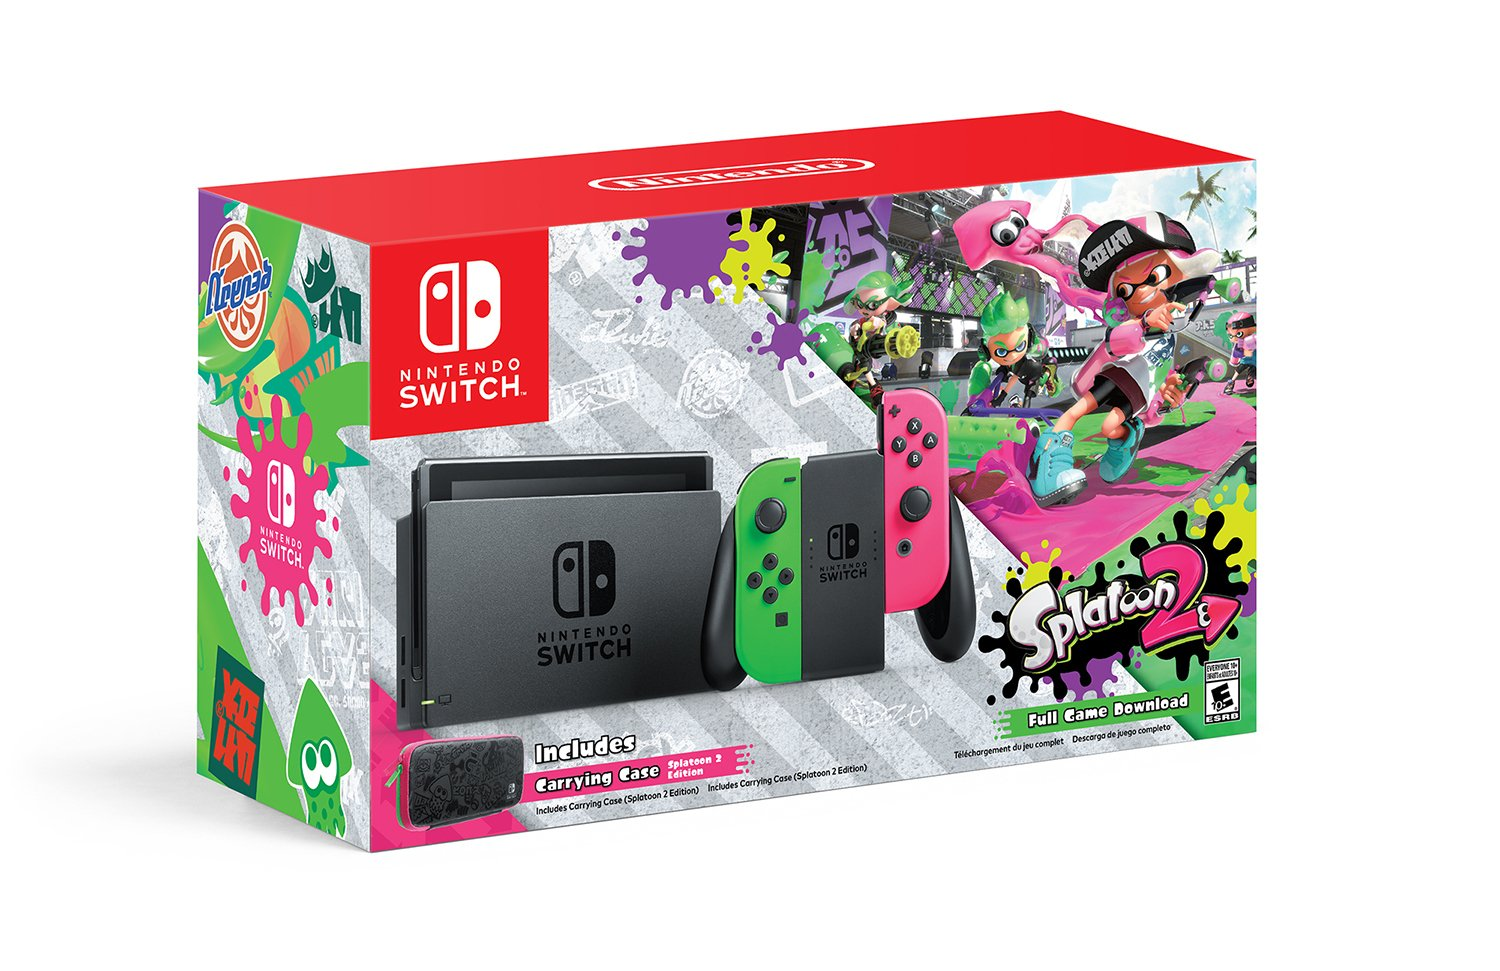 splatoon 2 nintendo switch bundle w neon green pink joy cons out next month in north. Black Bedroom Furniture Sets. Home Design Ideas